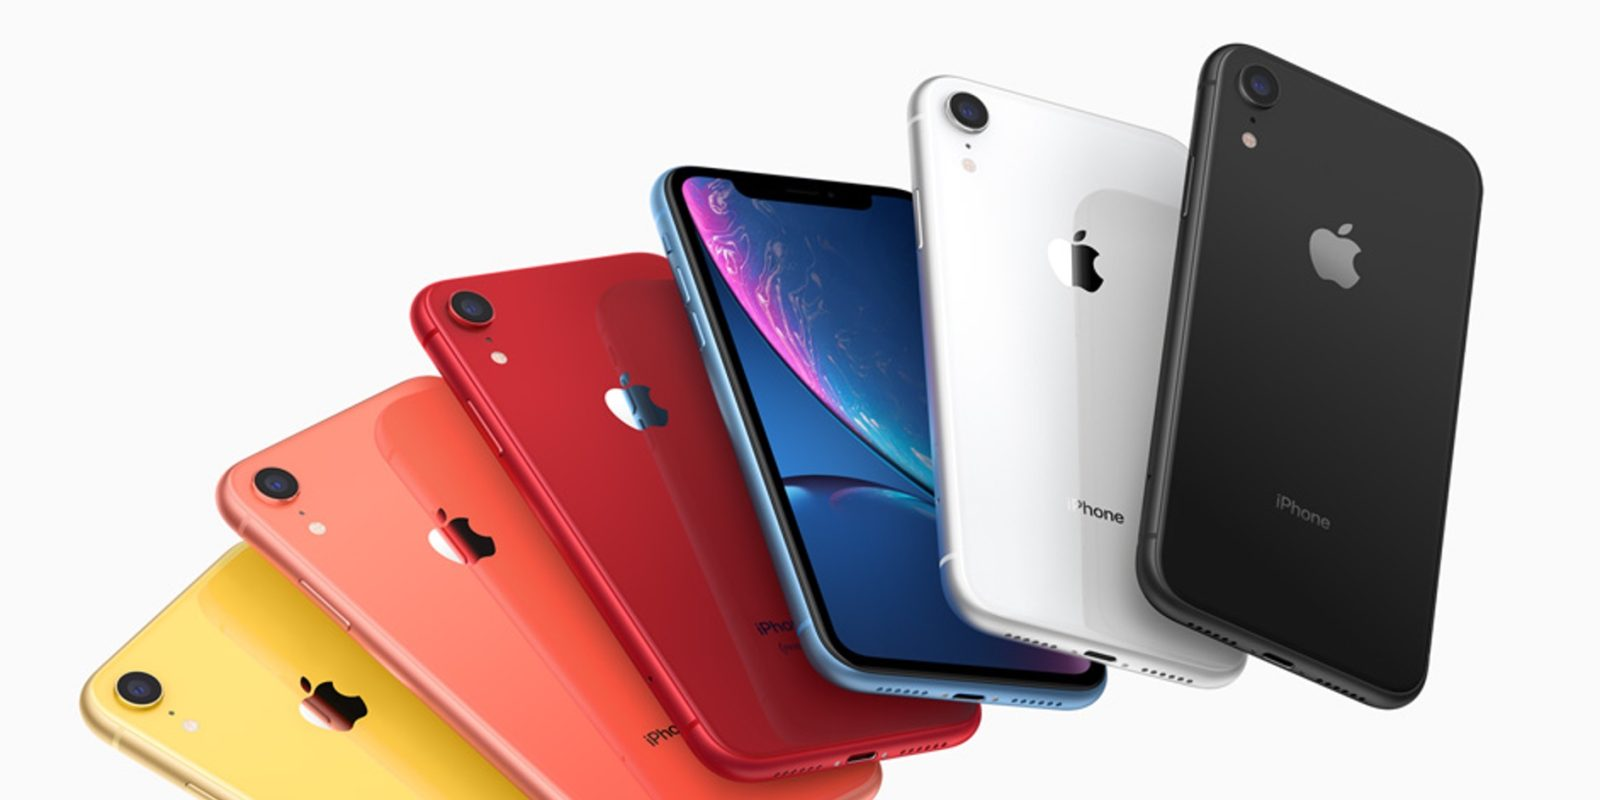 Report: 2019 iPhone XR to be available in two new colors, replacing coral and blue